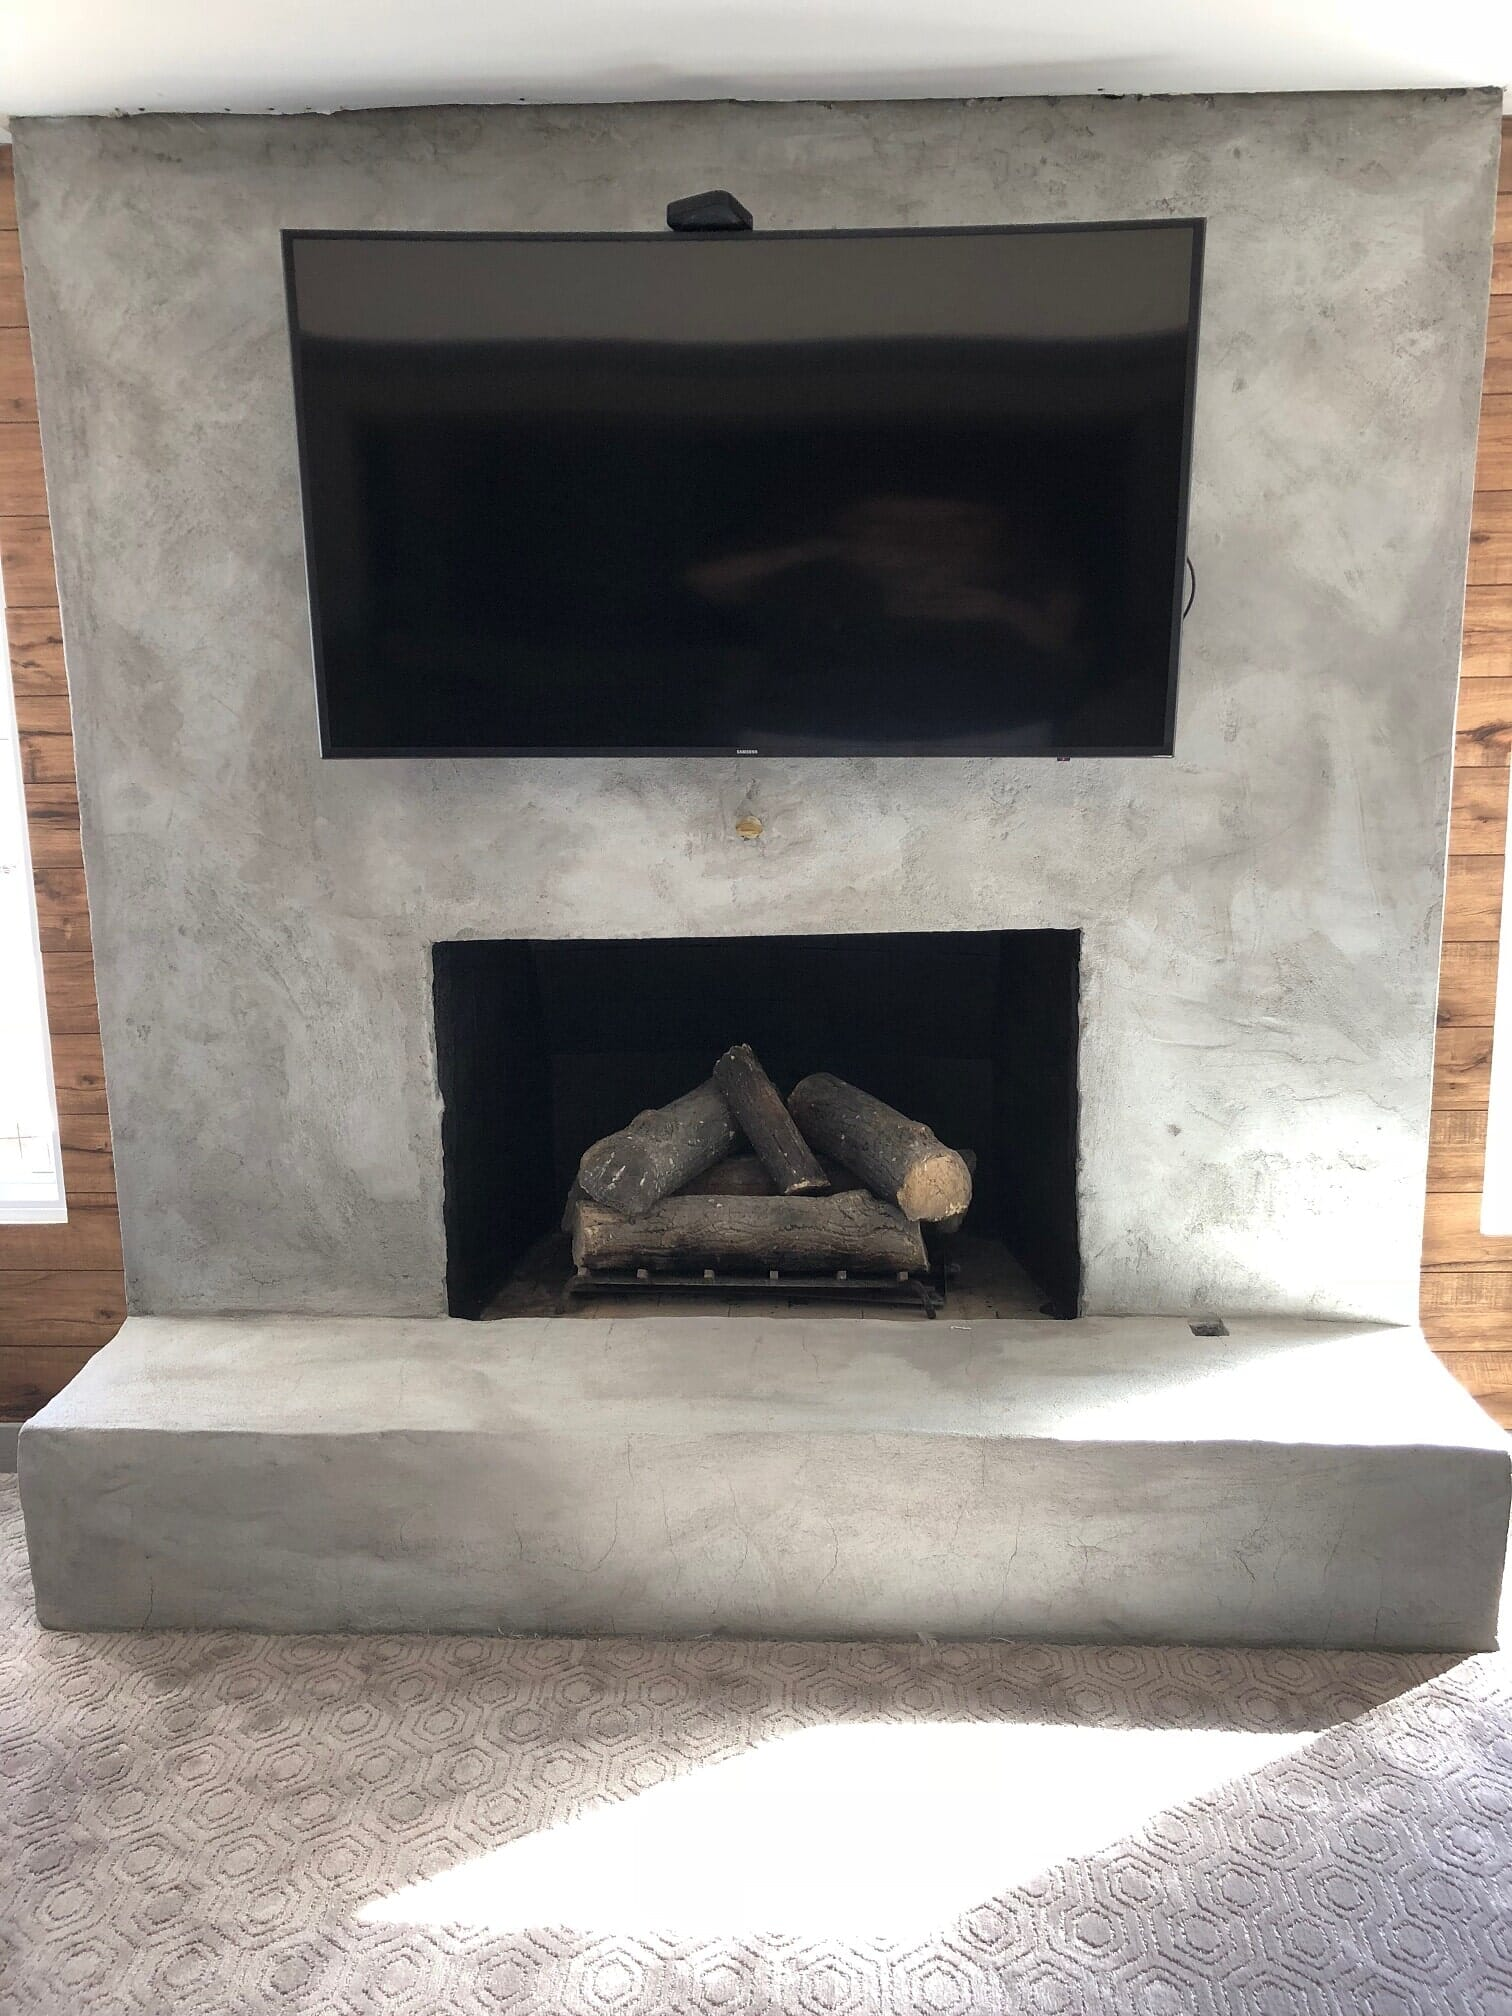 from limestone taller interior ceilings after fireplace installed feel brick design preferred we to how a floor cover make the reface greensboro tiles their ceiling homeowner refacing this